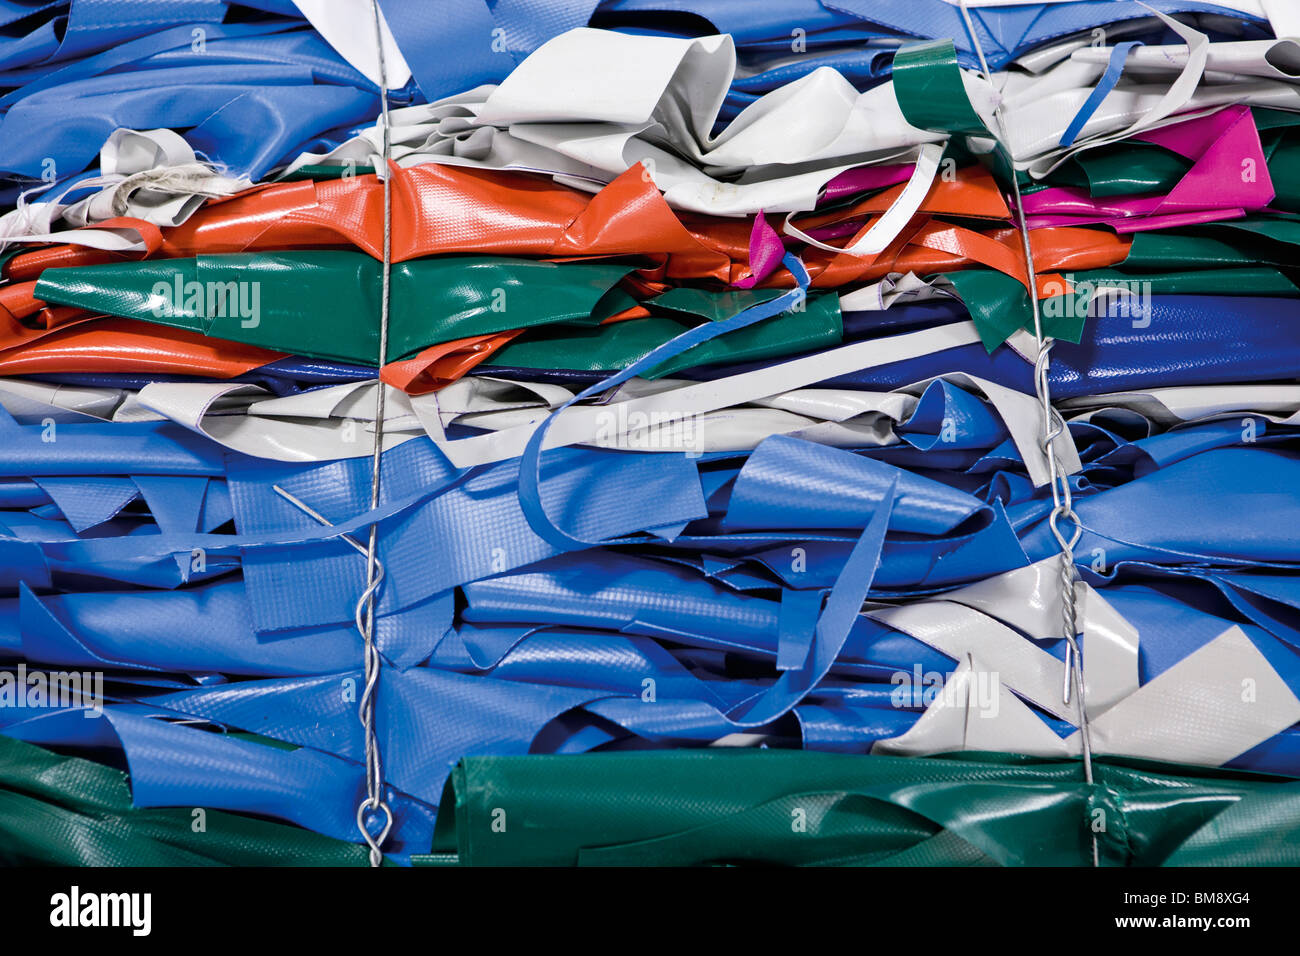 Bales of PVC sheeting to be recycled - Stock Image